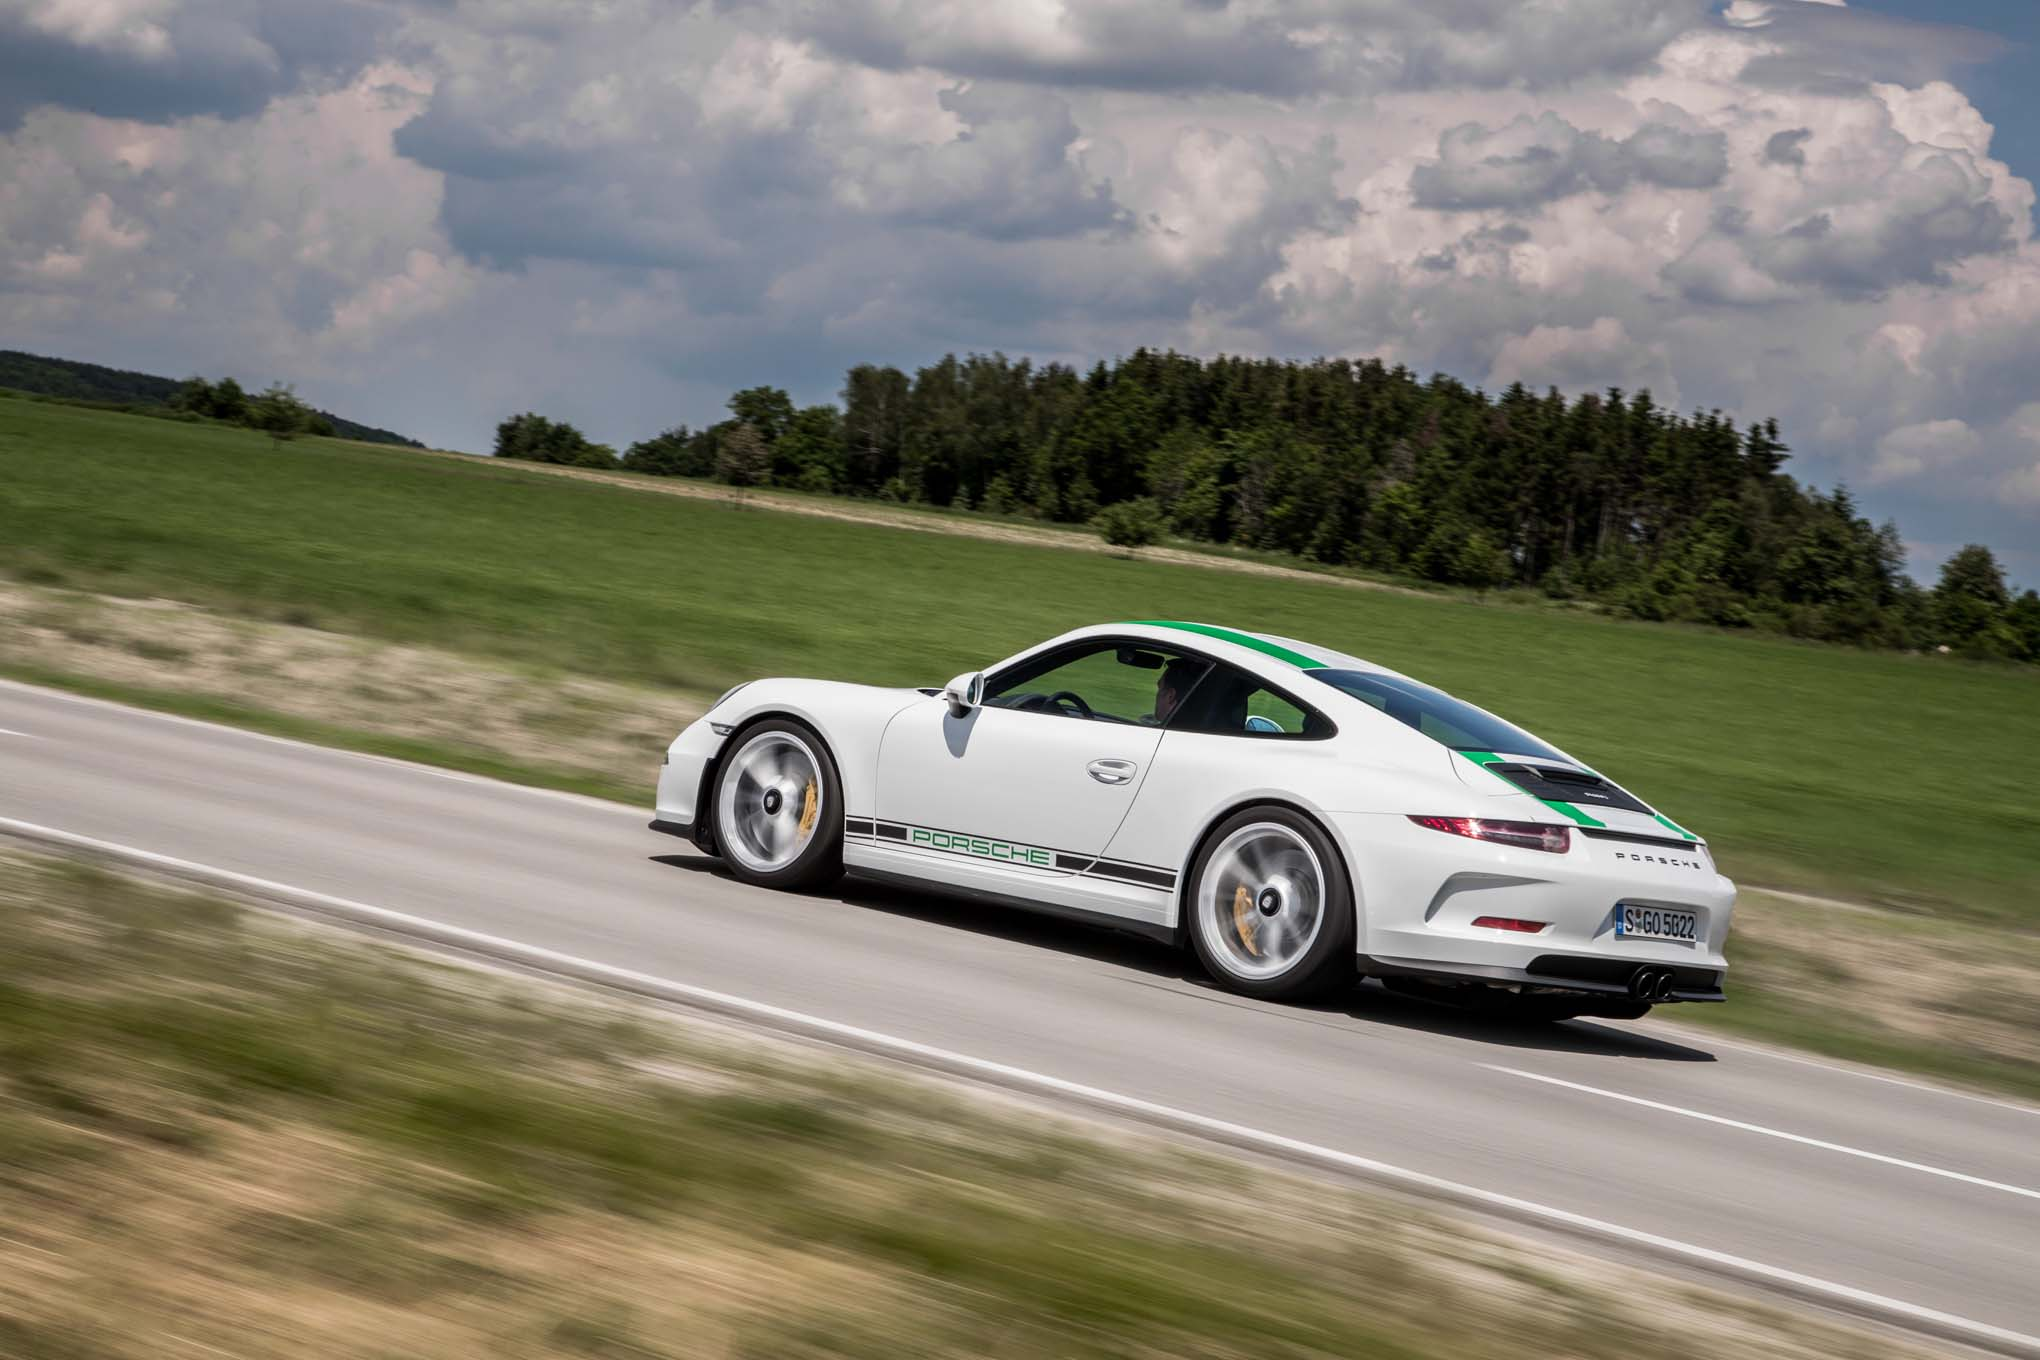 Though Magnitude Finance Believes The 911 R Is A